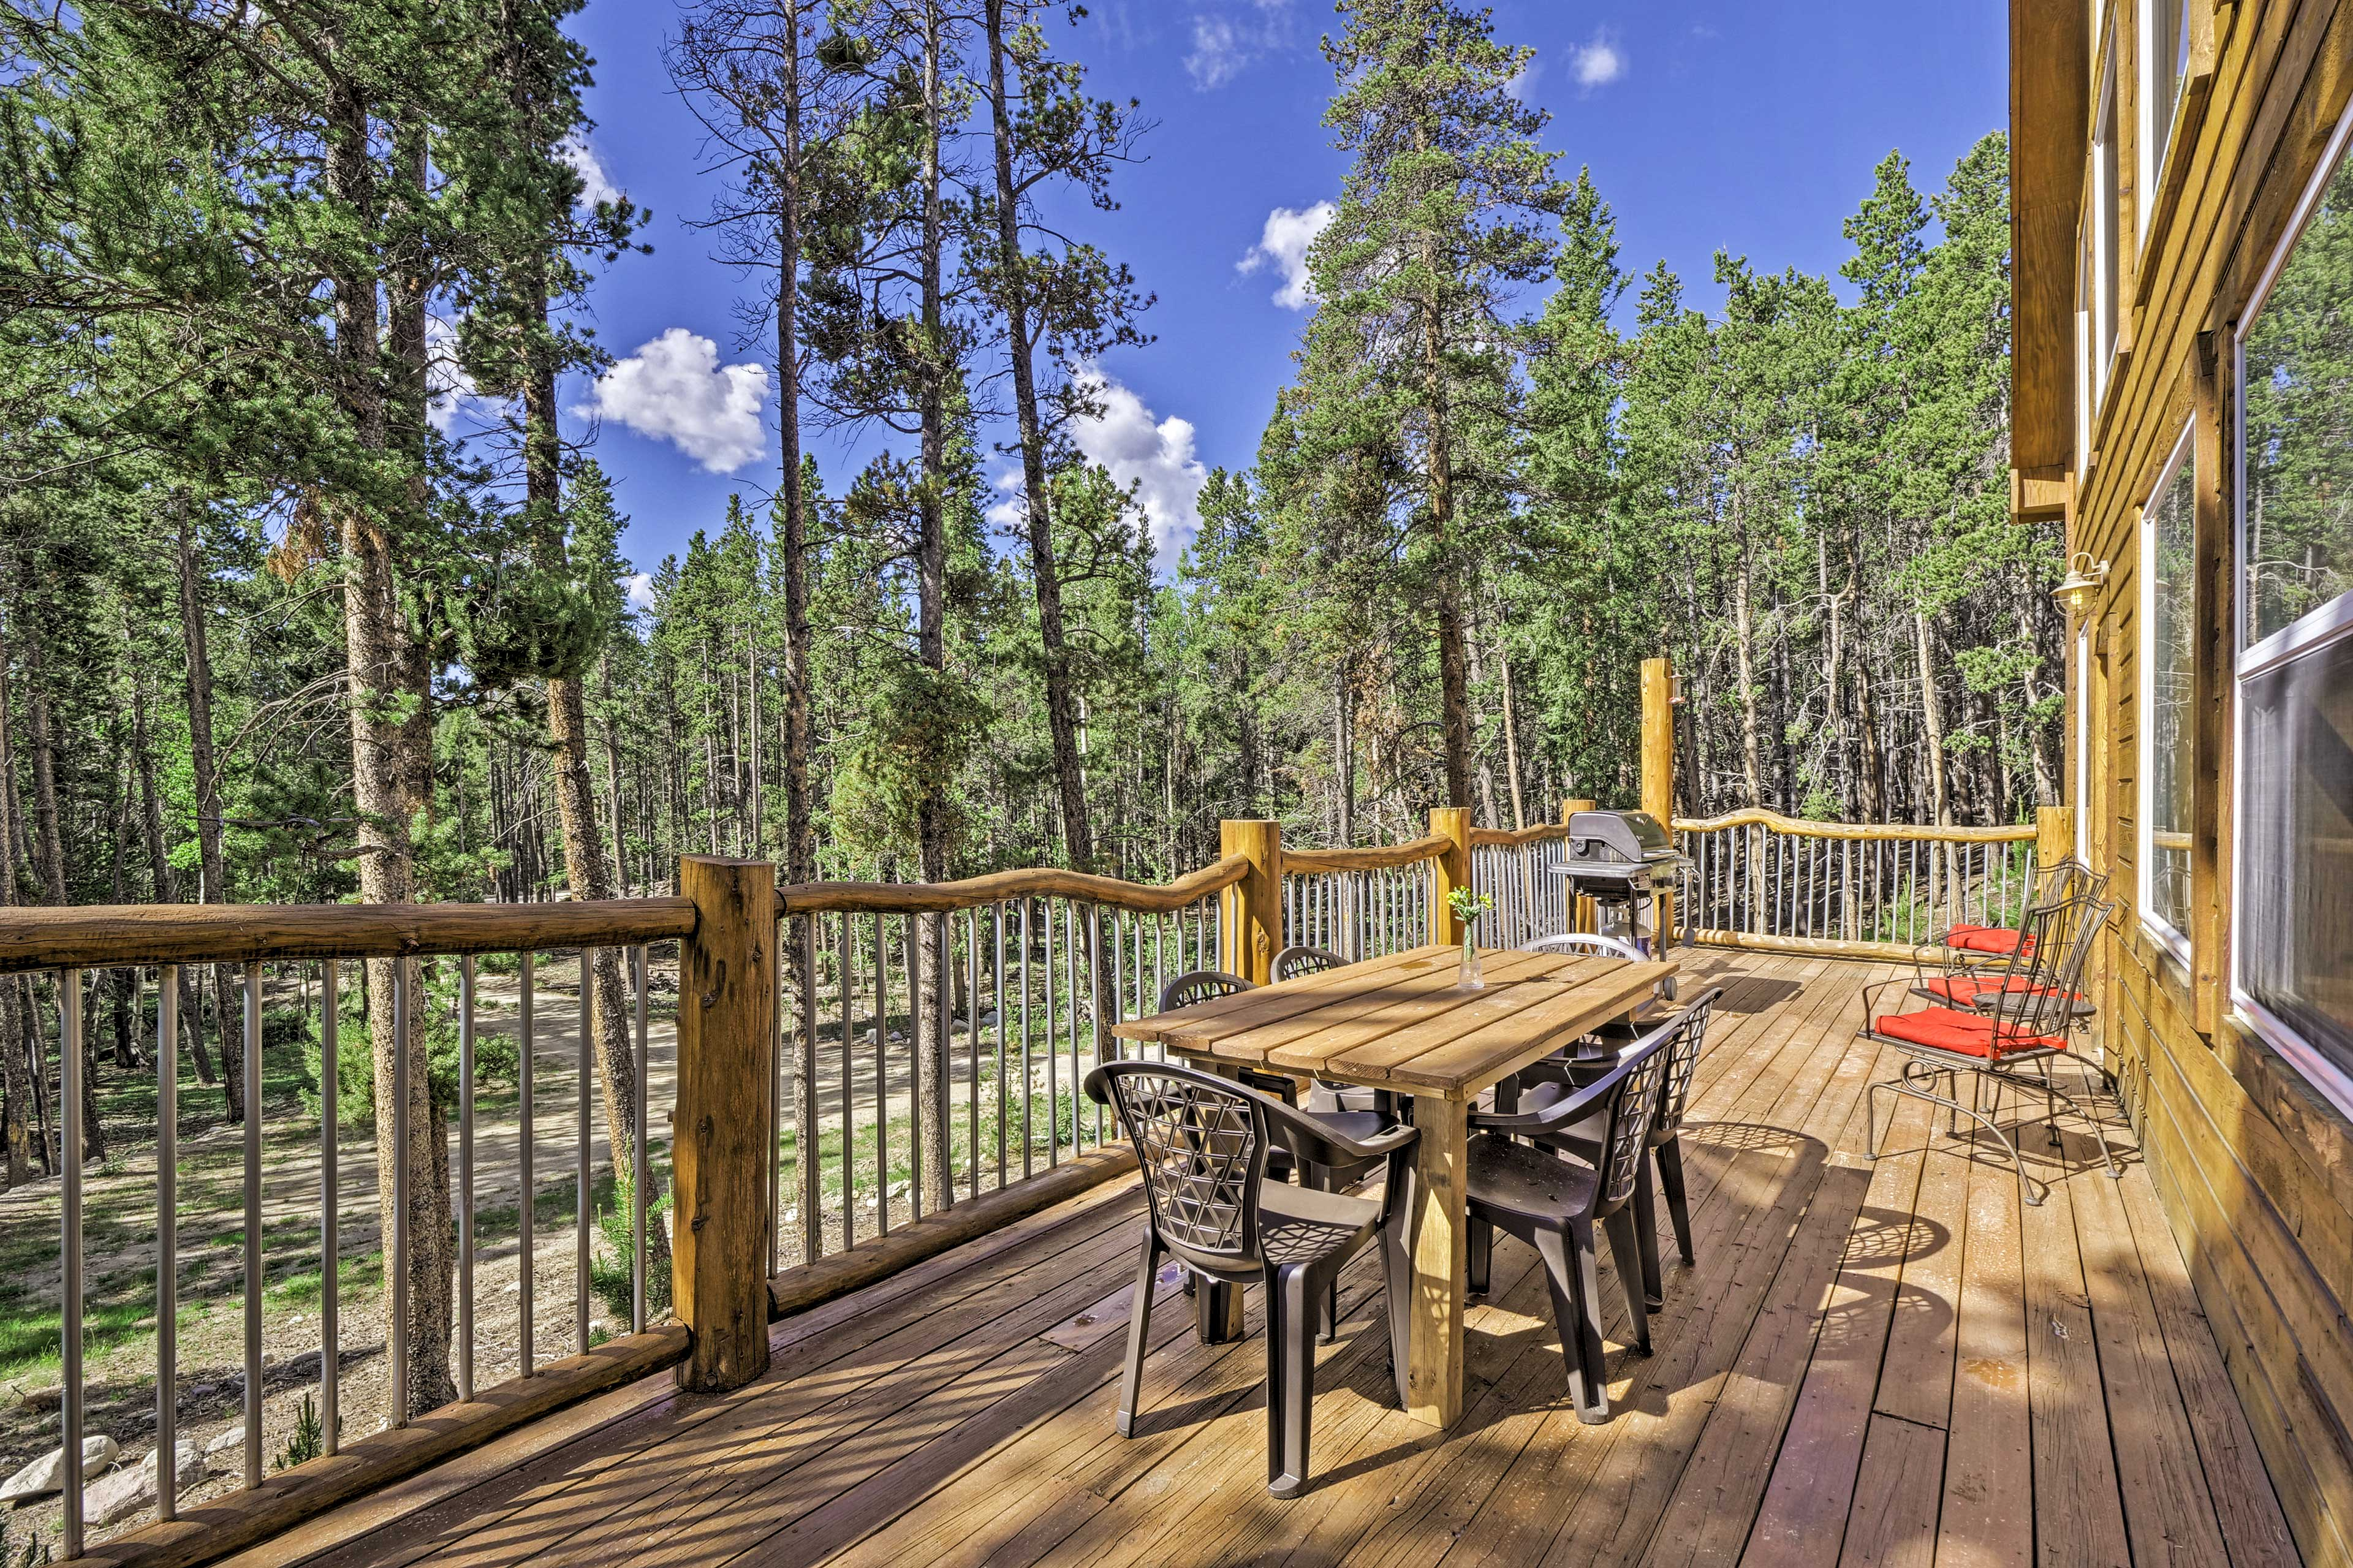 In the summer months, you may never want to leave the deck.